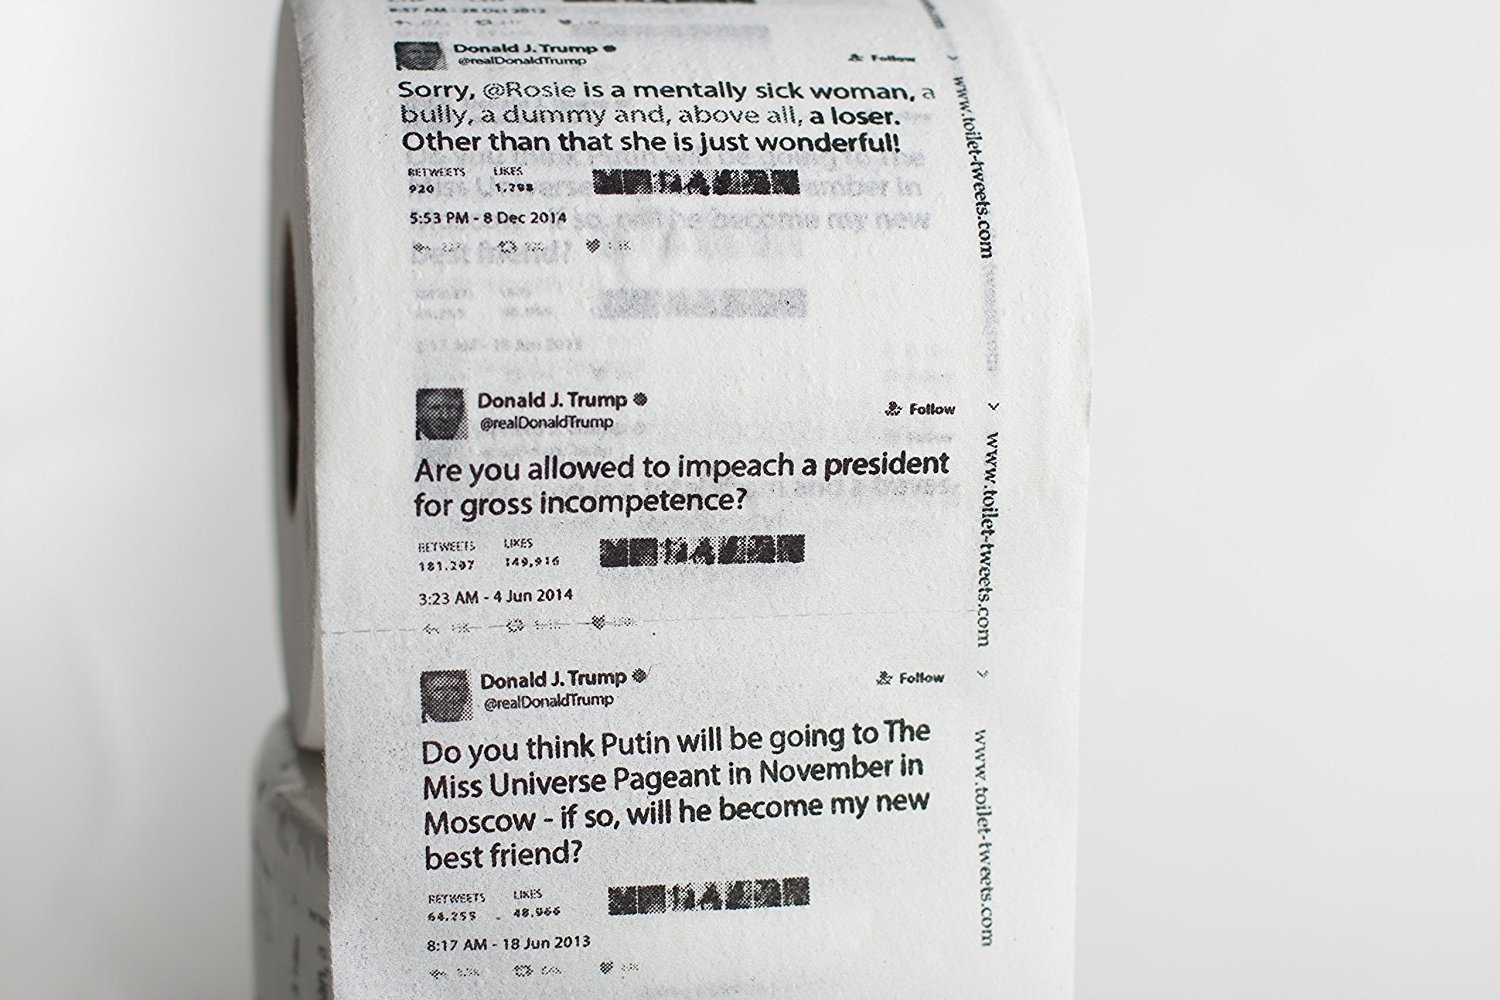 Donald Trump's shitty tweets printed on toilet paper